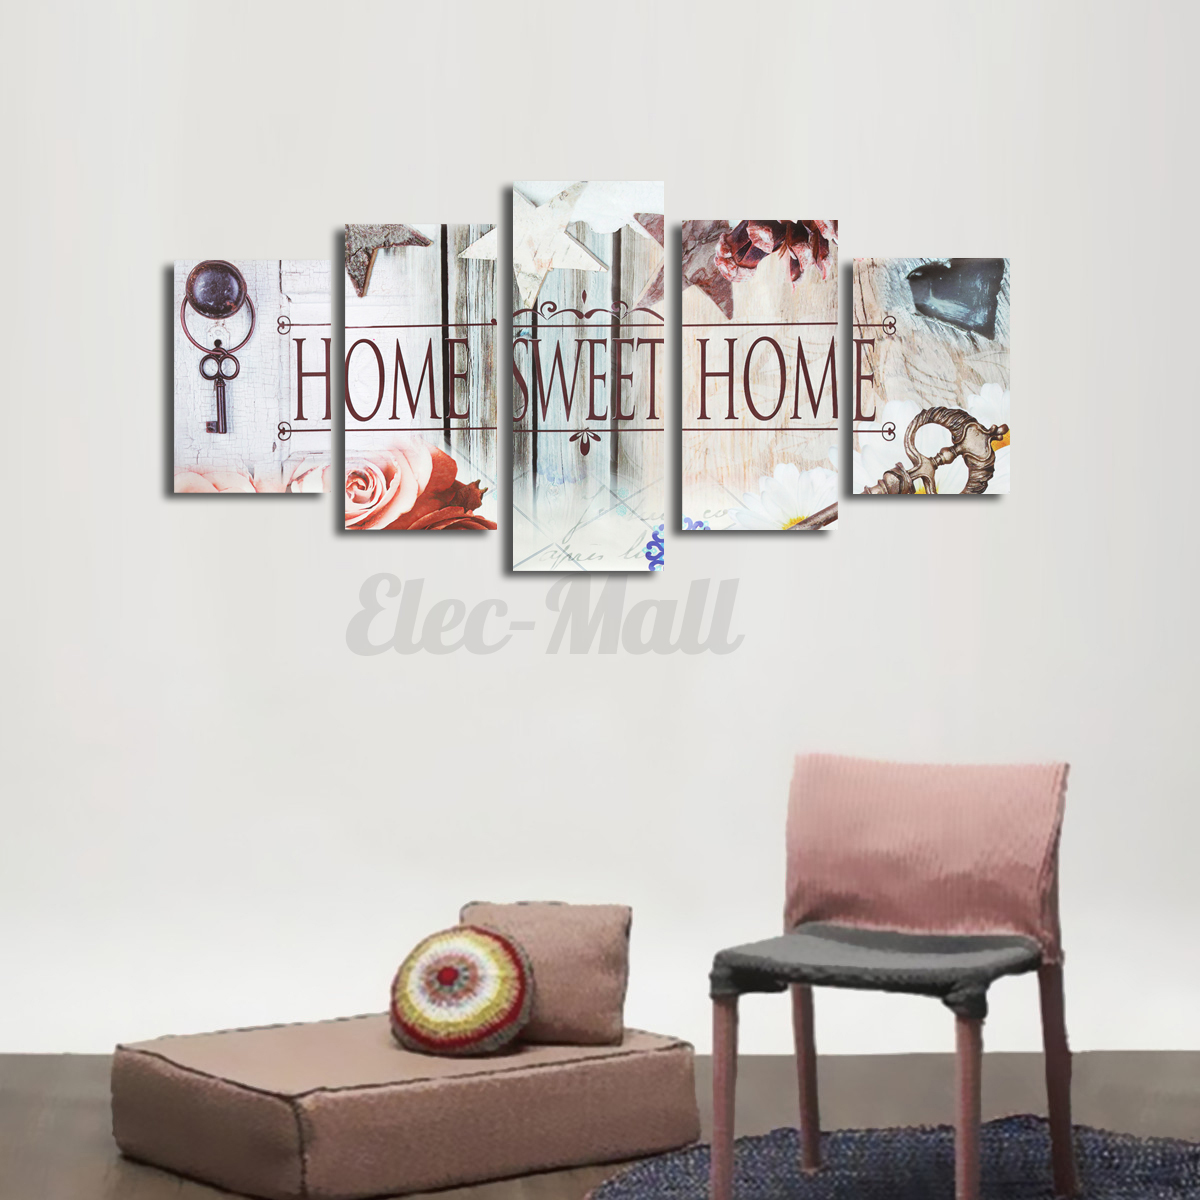 Home sweet home unframed hd canvas prints wall art Home sweet home wall decor